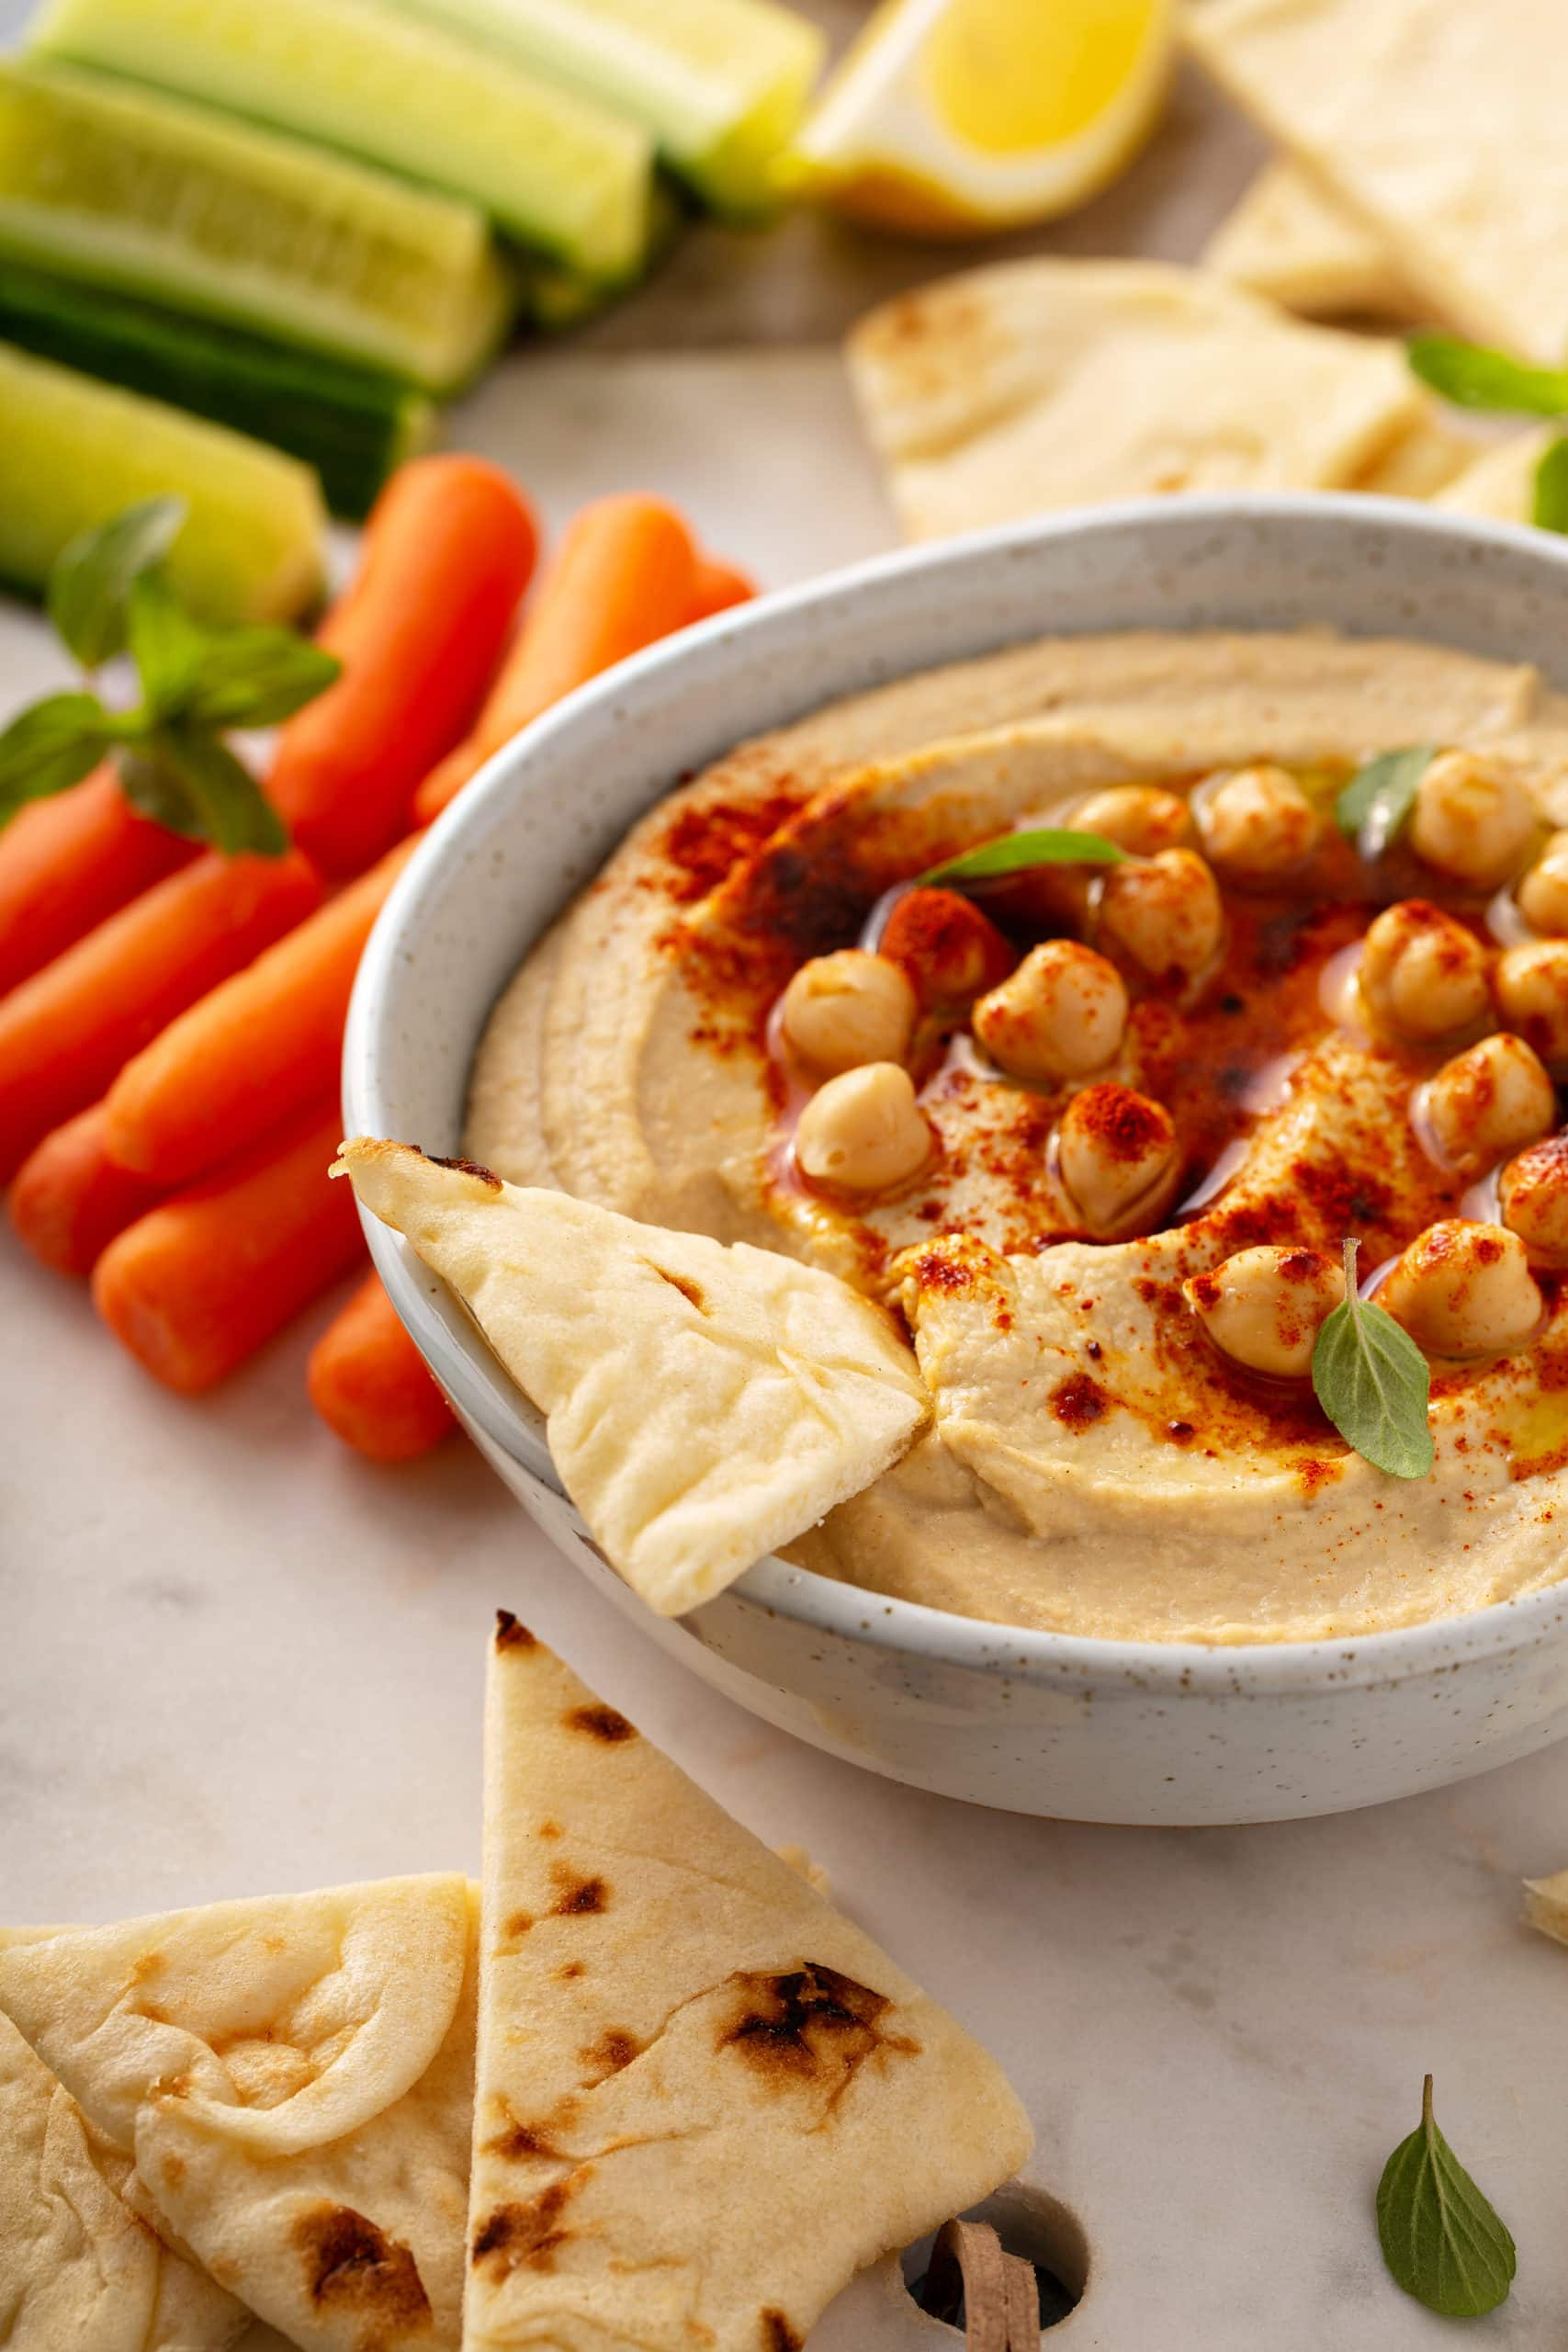 A bowl of hummus with whole chick peas on top, sprinkled with smoked paprika, and a chip dipped into it with carrot sticks on the side.